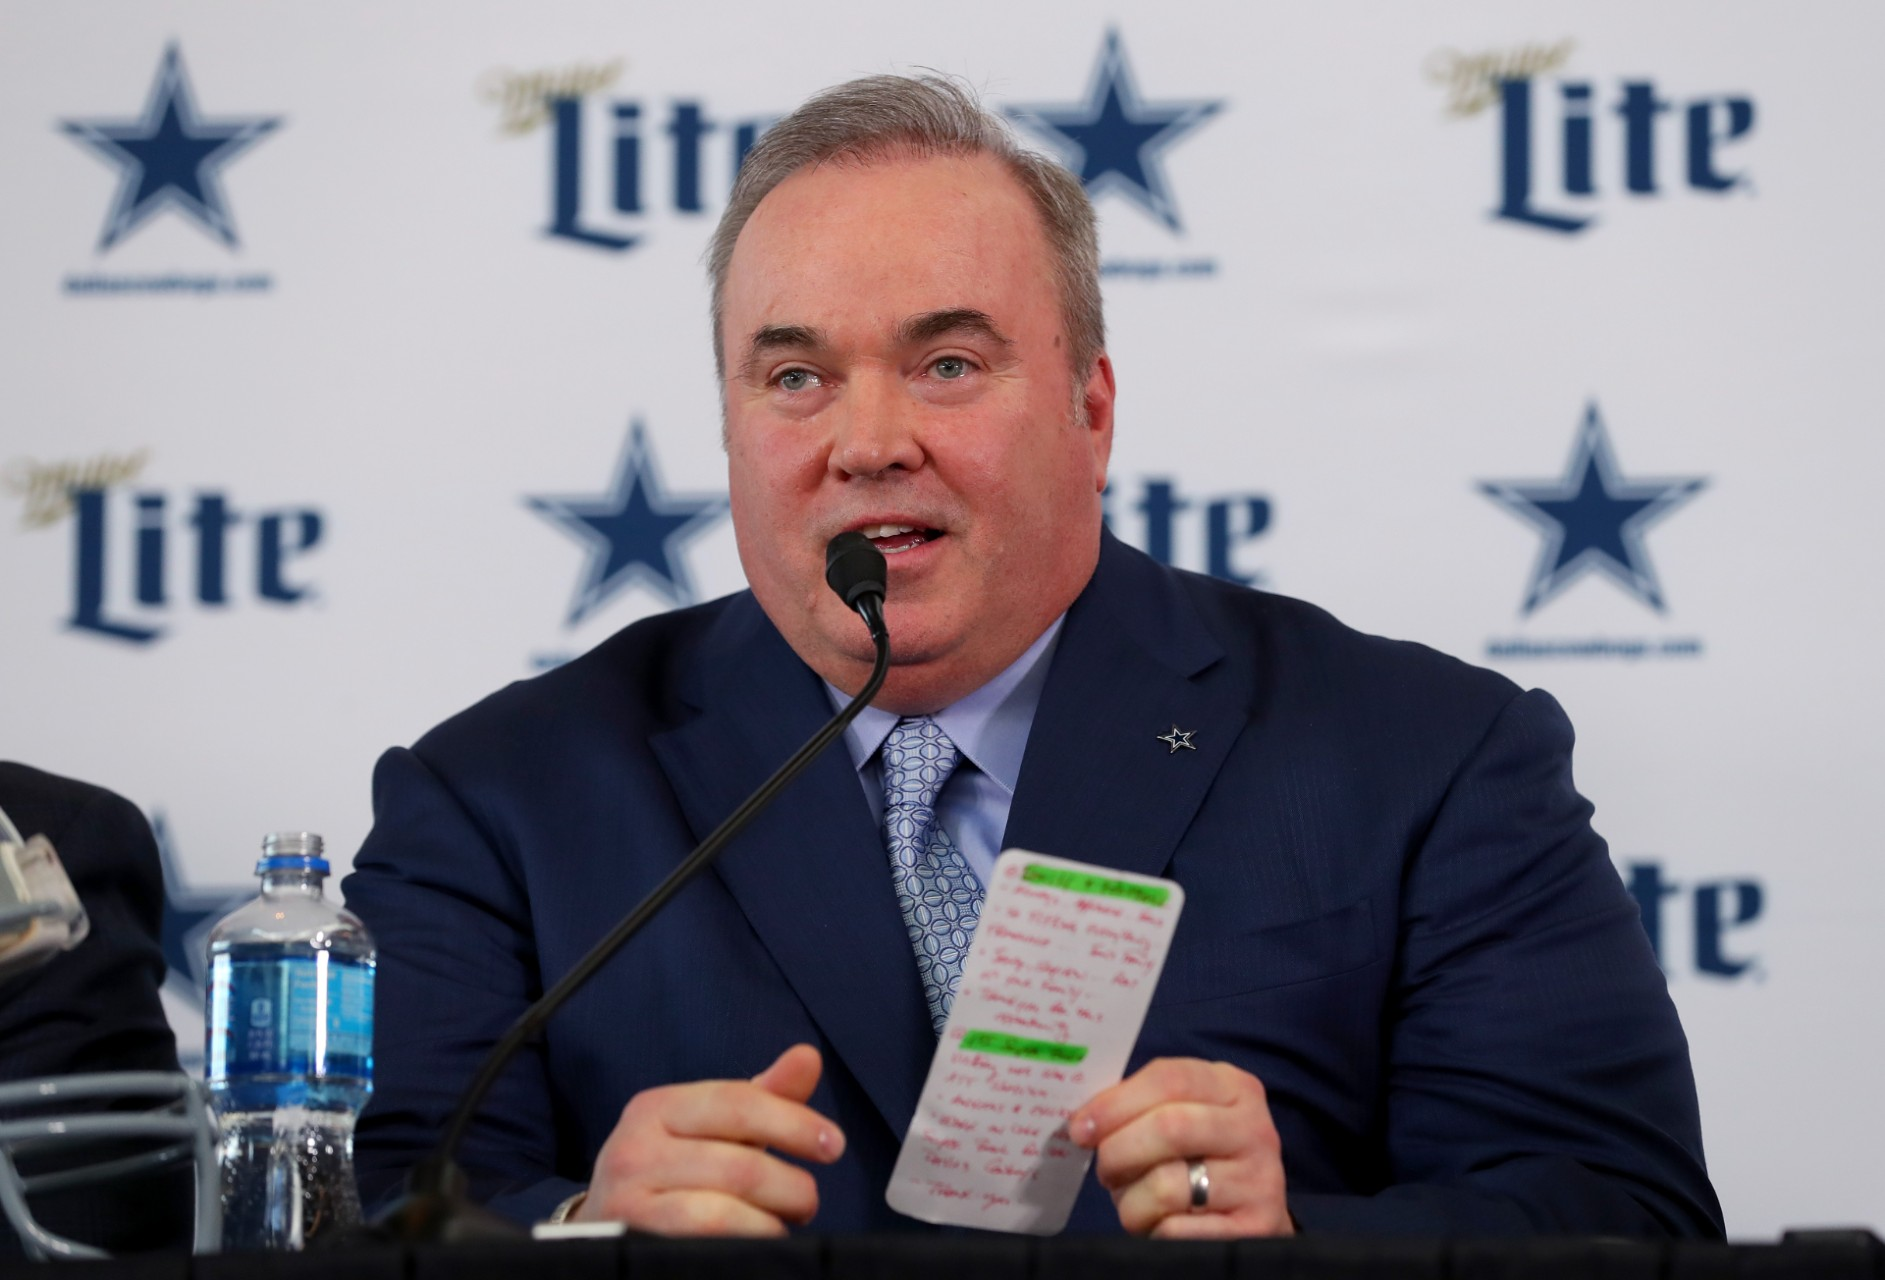 Cowboys drama suggests some players respected Jason Garrett more than Mike McCarthy